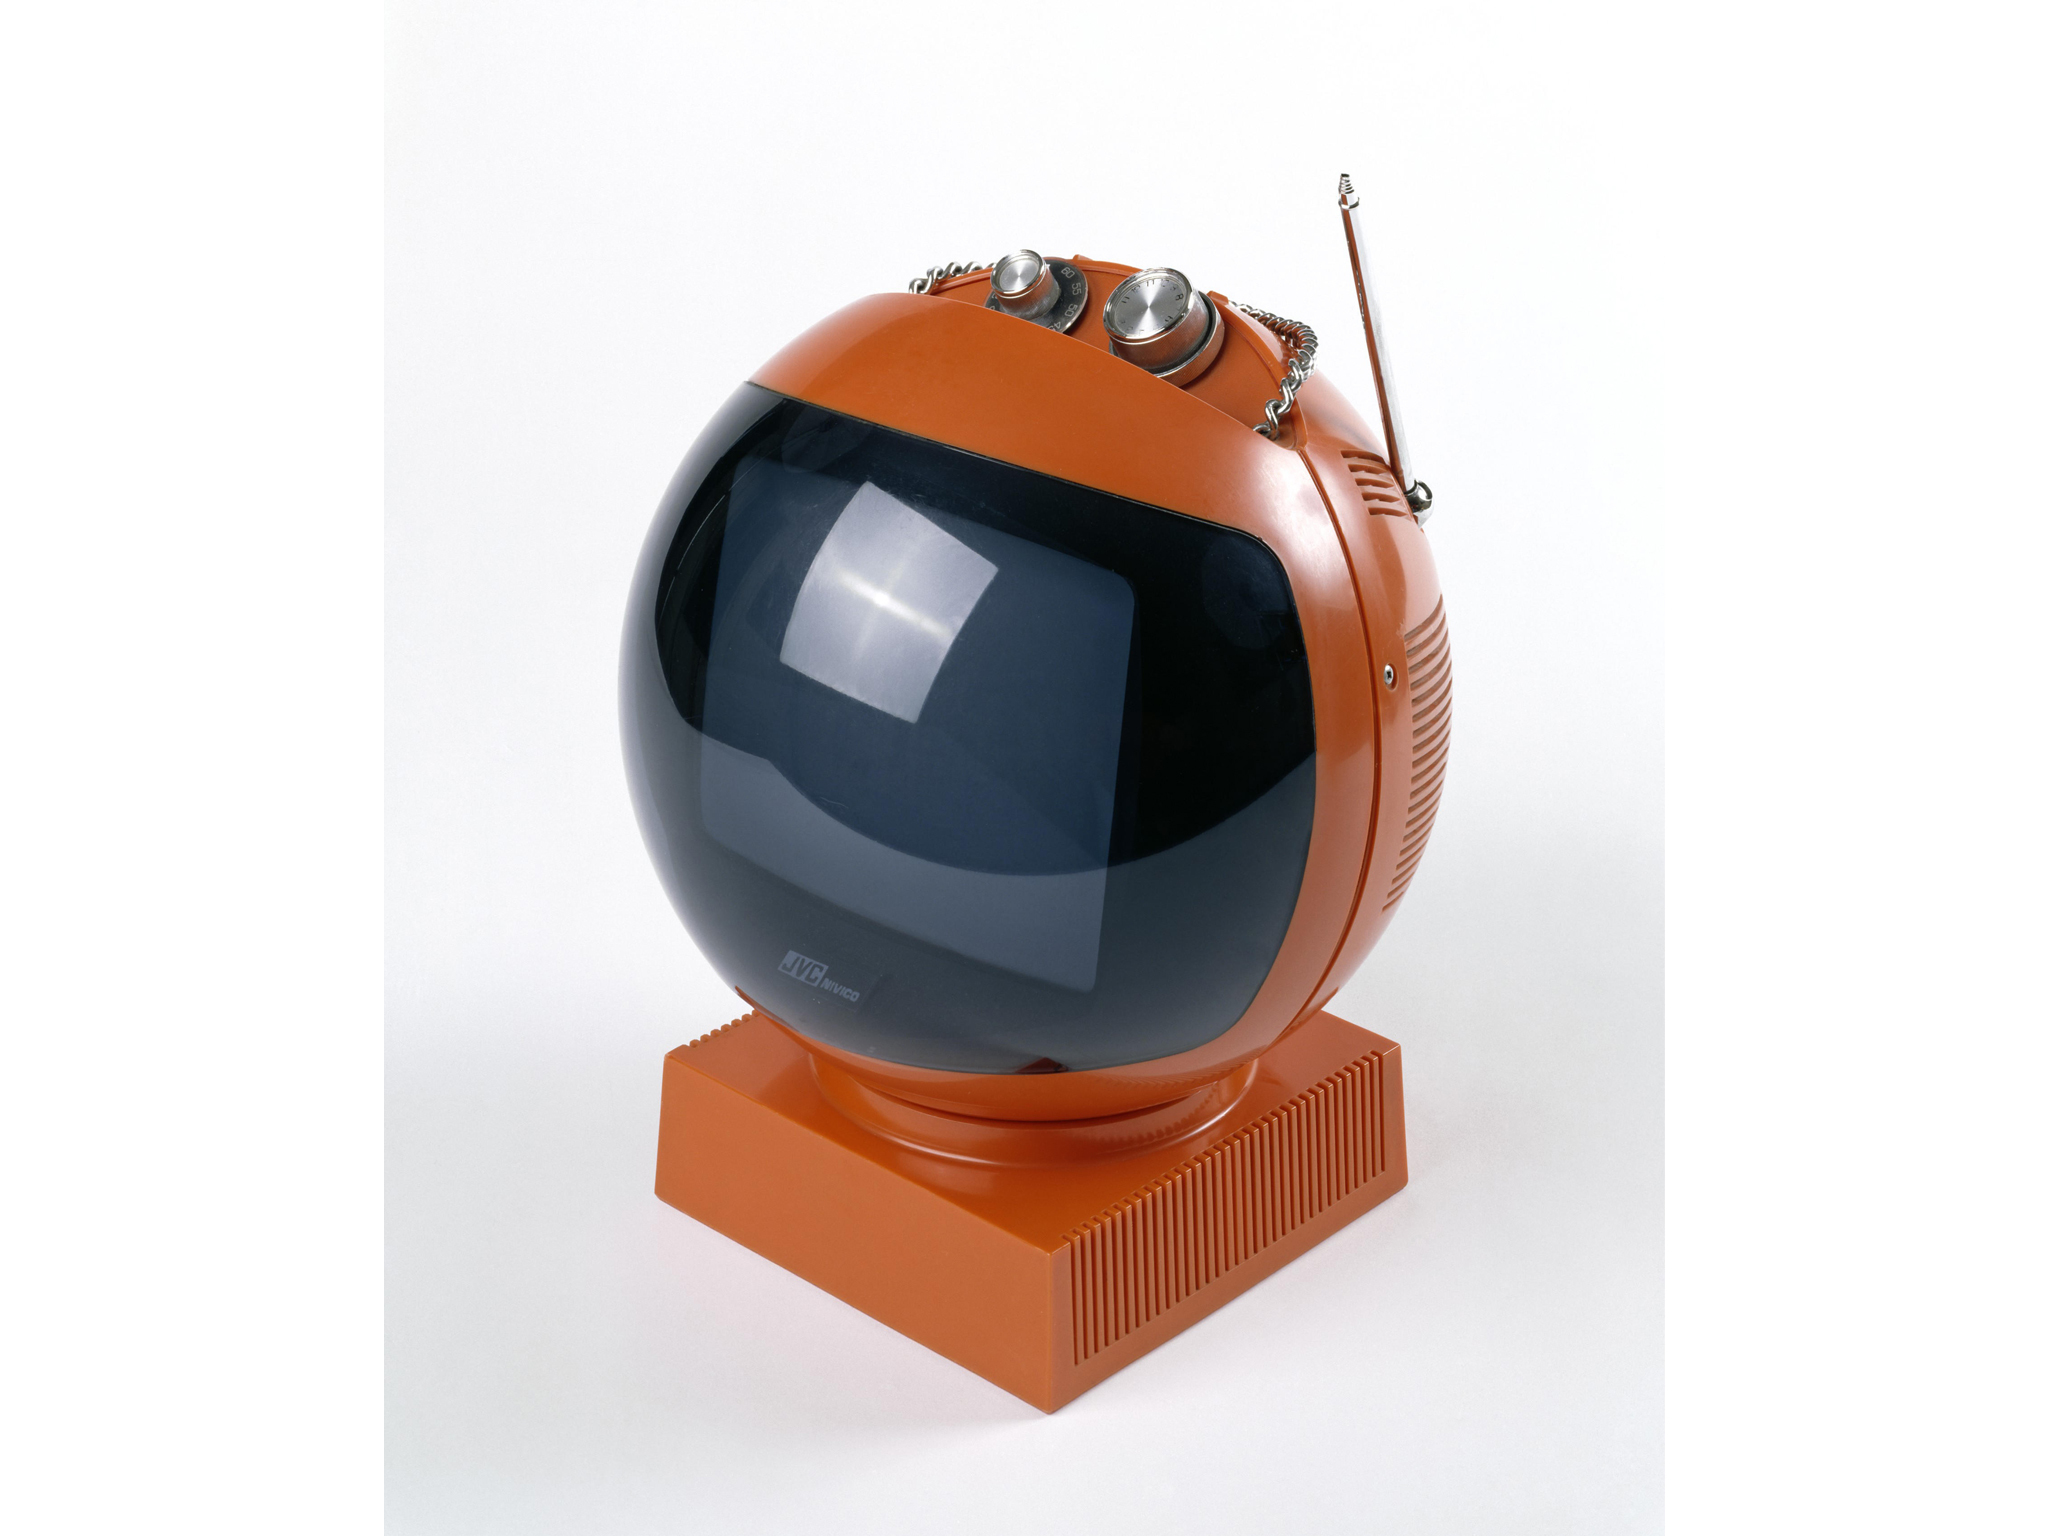 A 'Videosphere' television, from around 1966